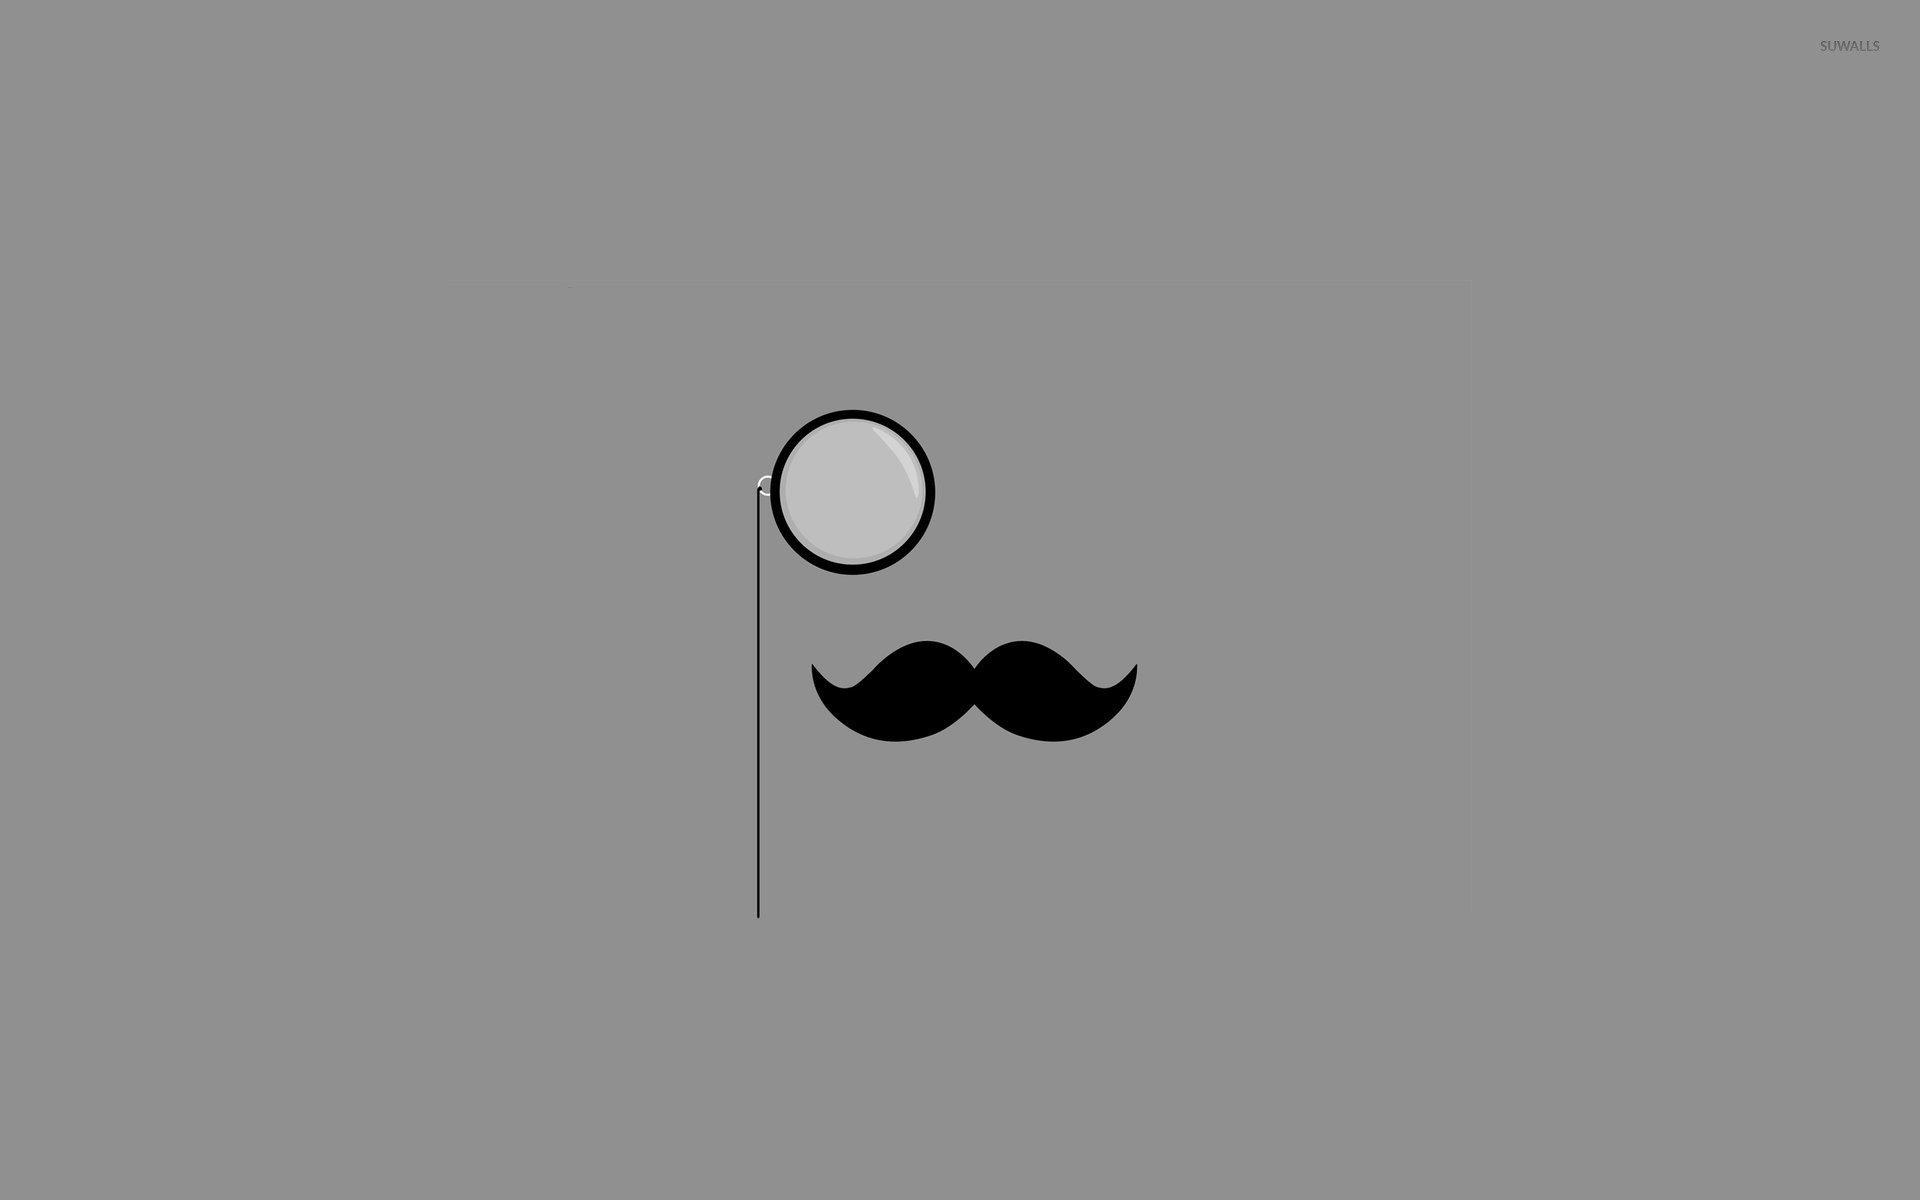 1920x1200 Monocle Mustache wallpaper Minimalistic wallpapers 15401